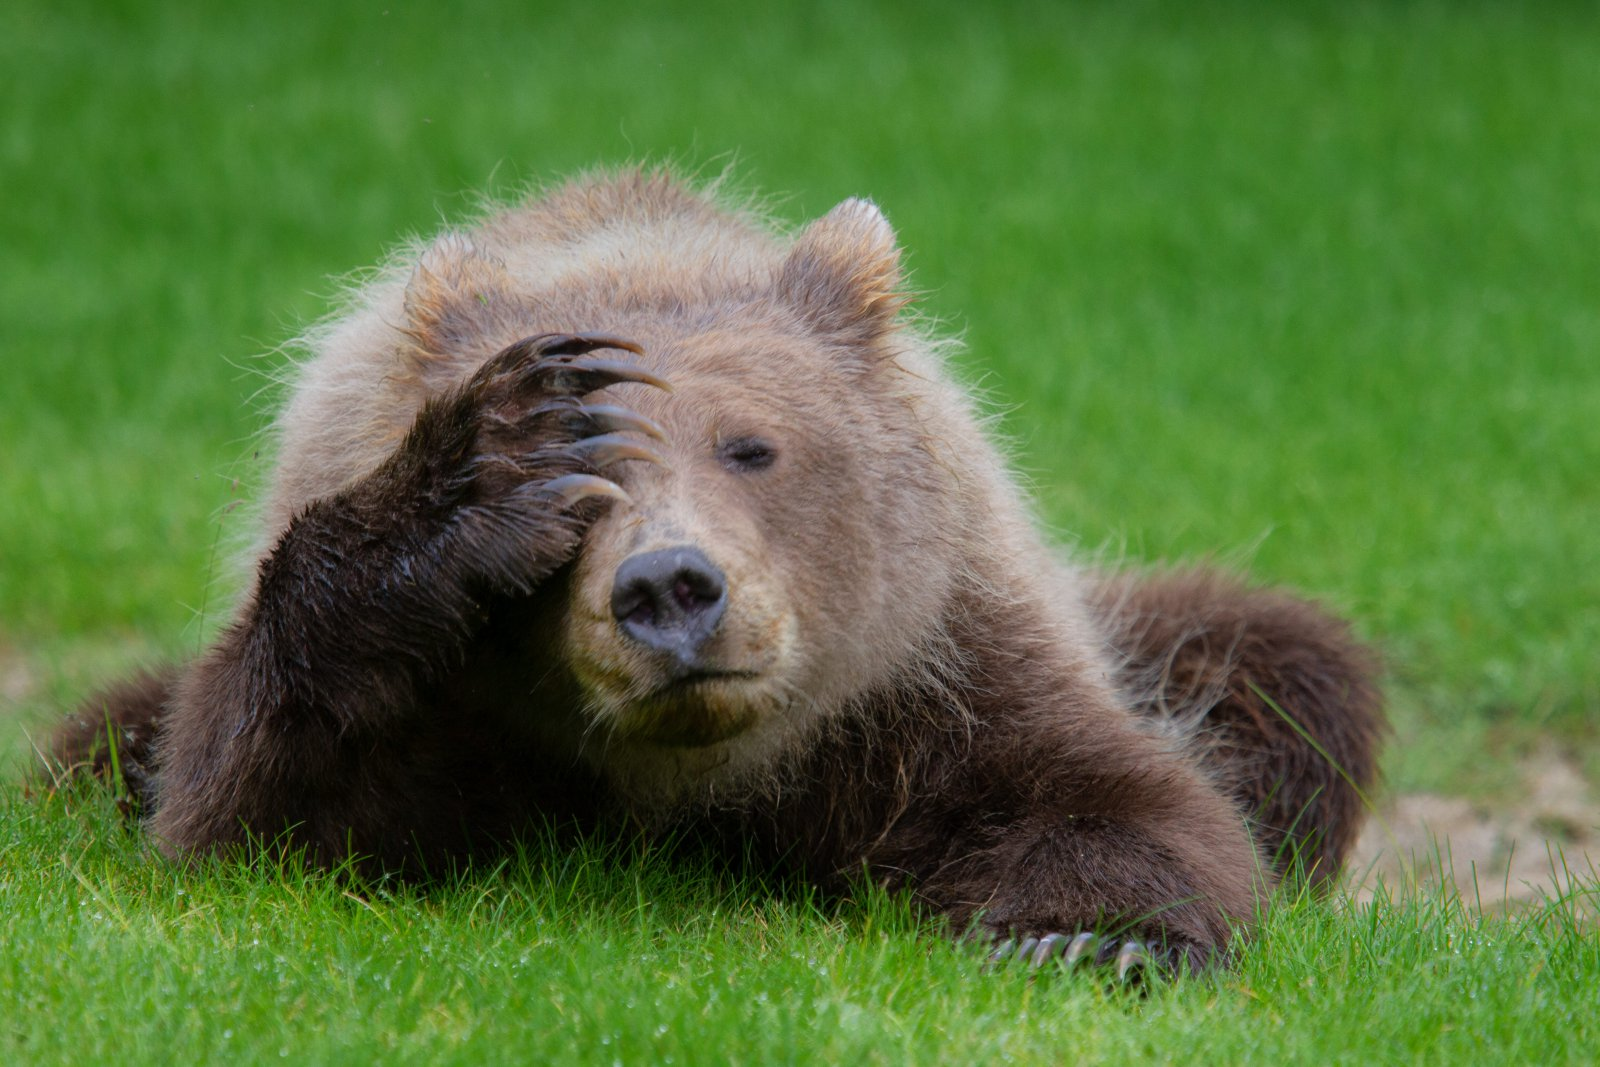 Coastal Brown Bear Cub with a Headache, © Danielle D'Ermo, Highly Commended, Comedy Wildlife Photography Awards